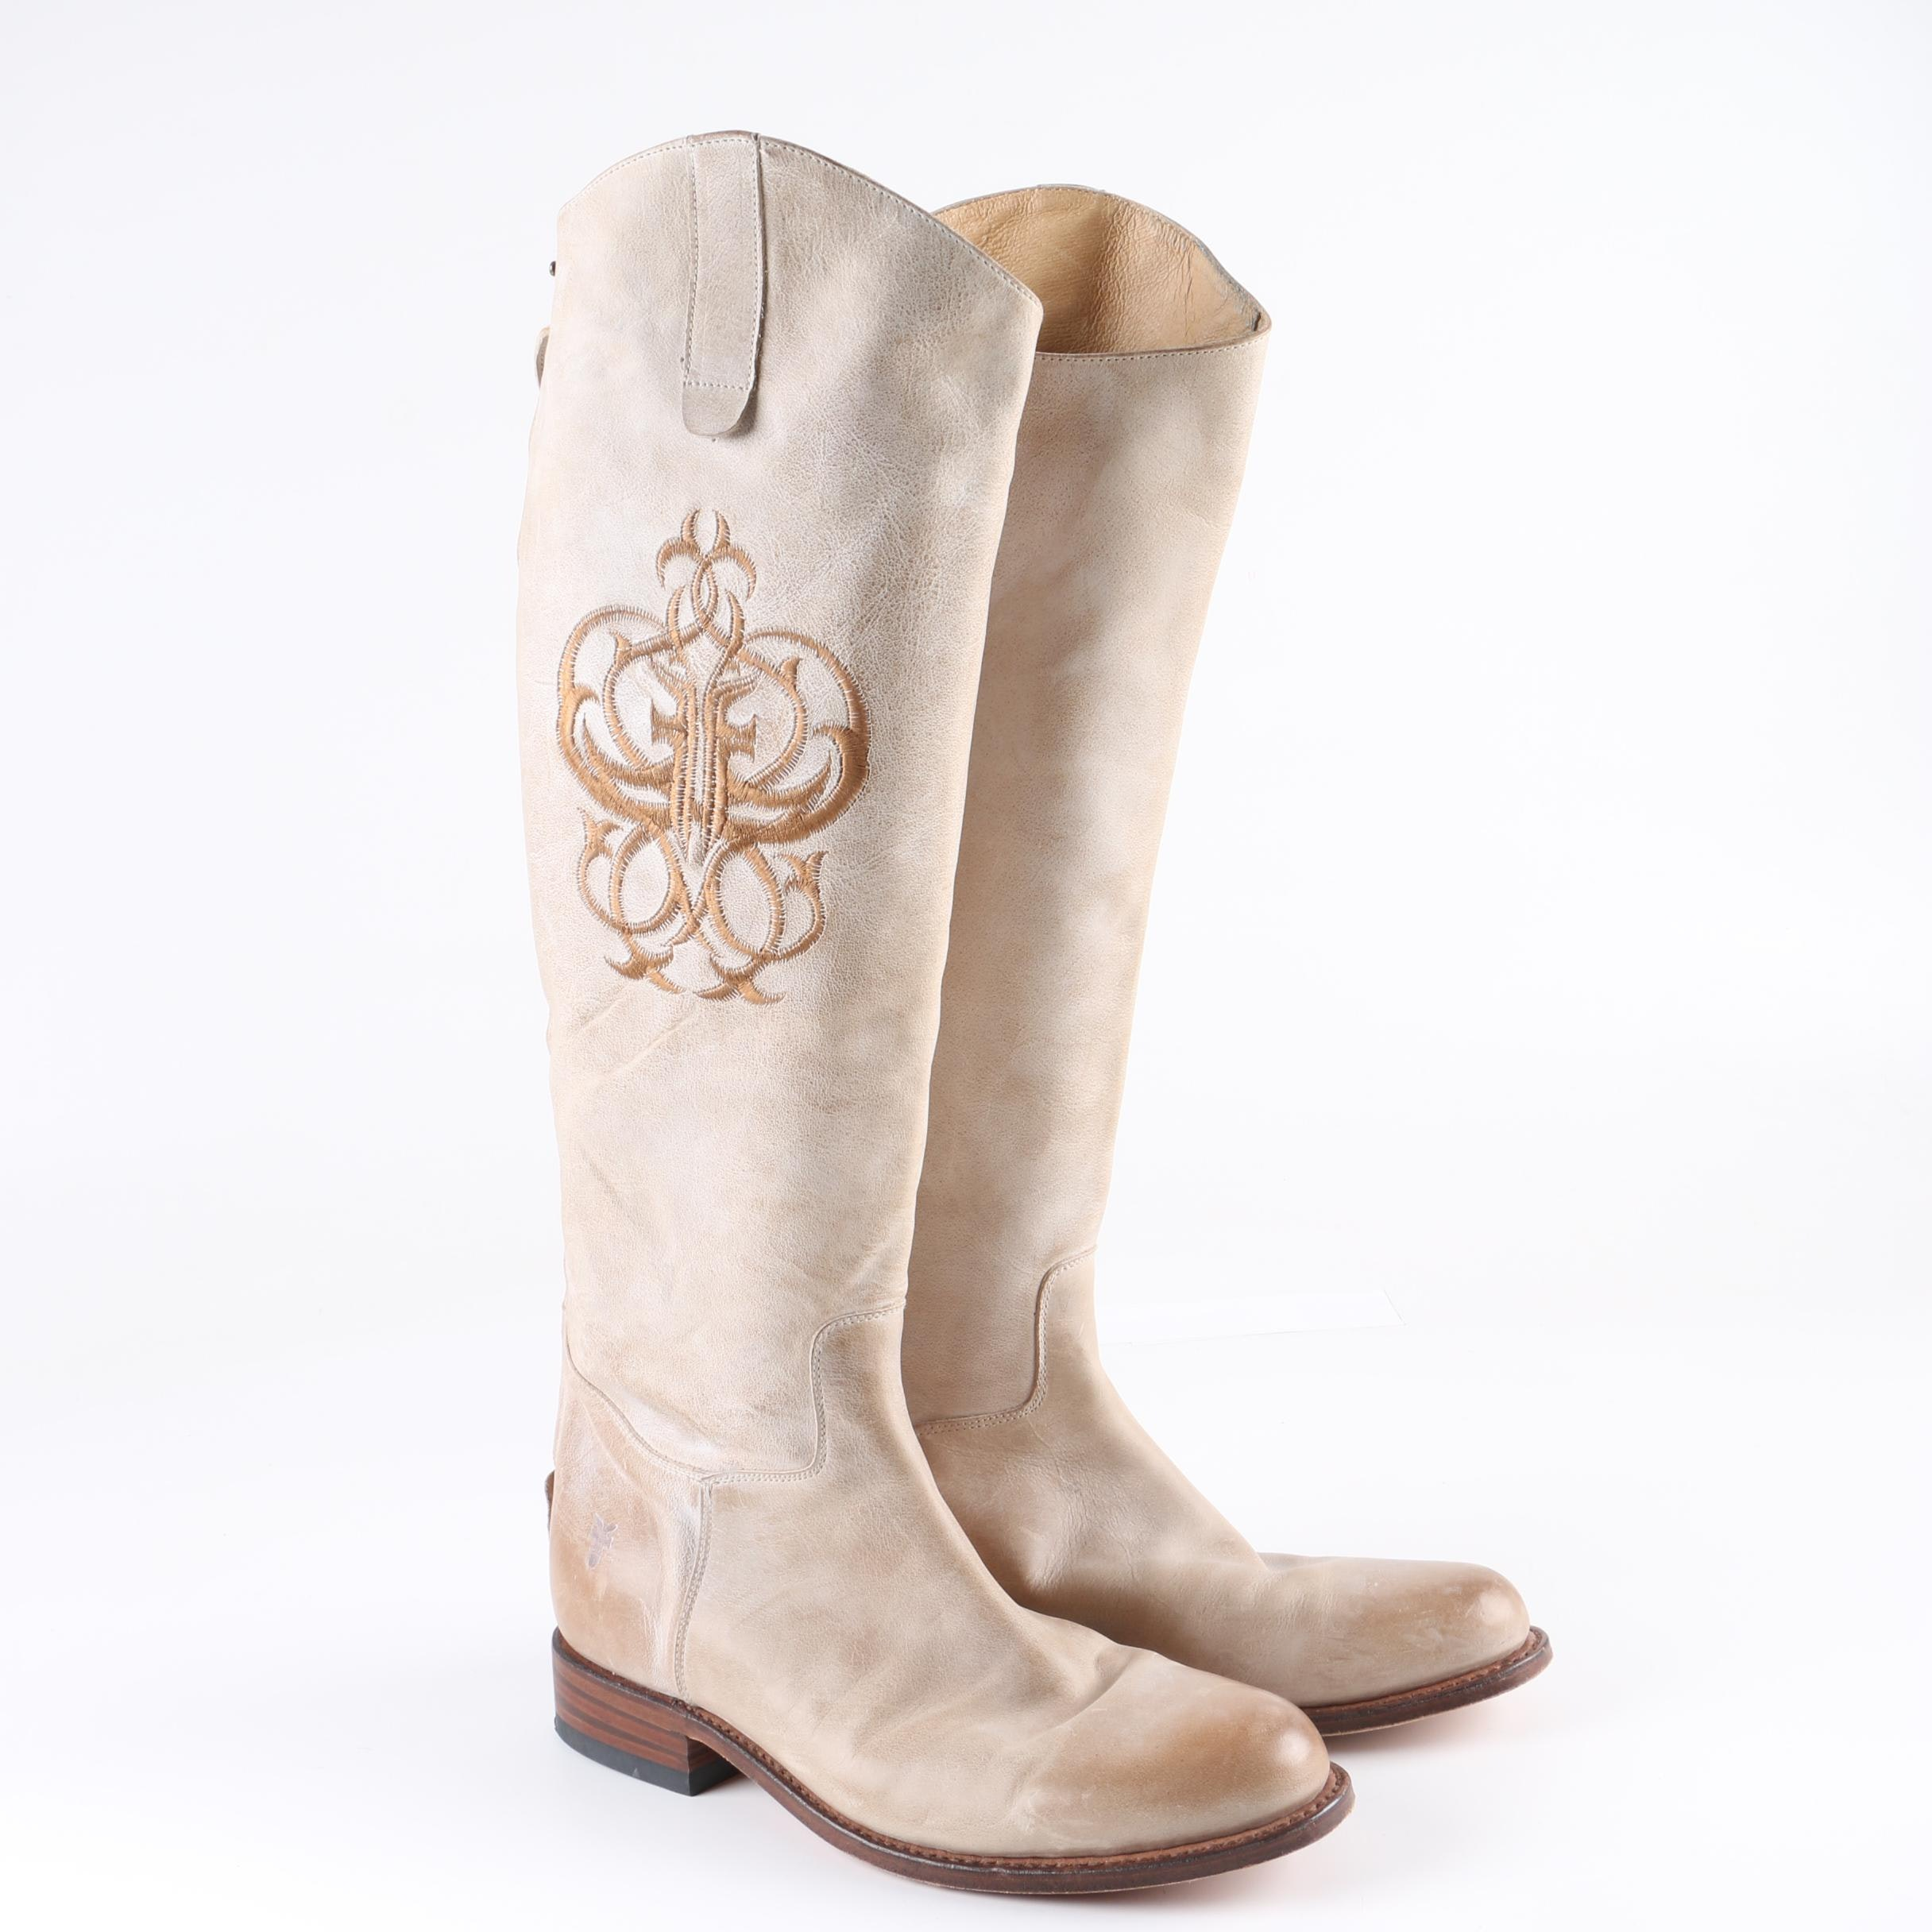 Women's Frye Off-White Leather Riding Boots with Embroidered Accents